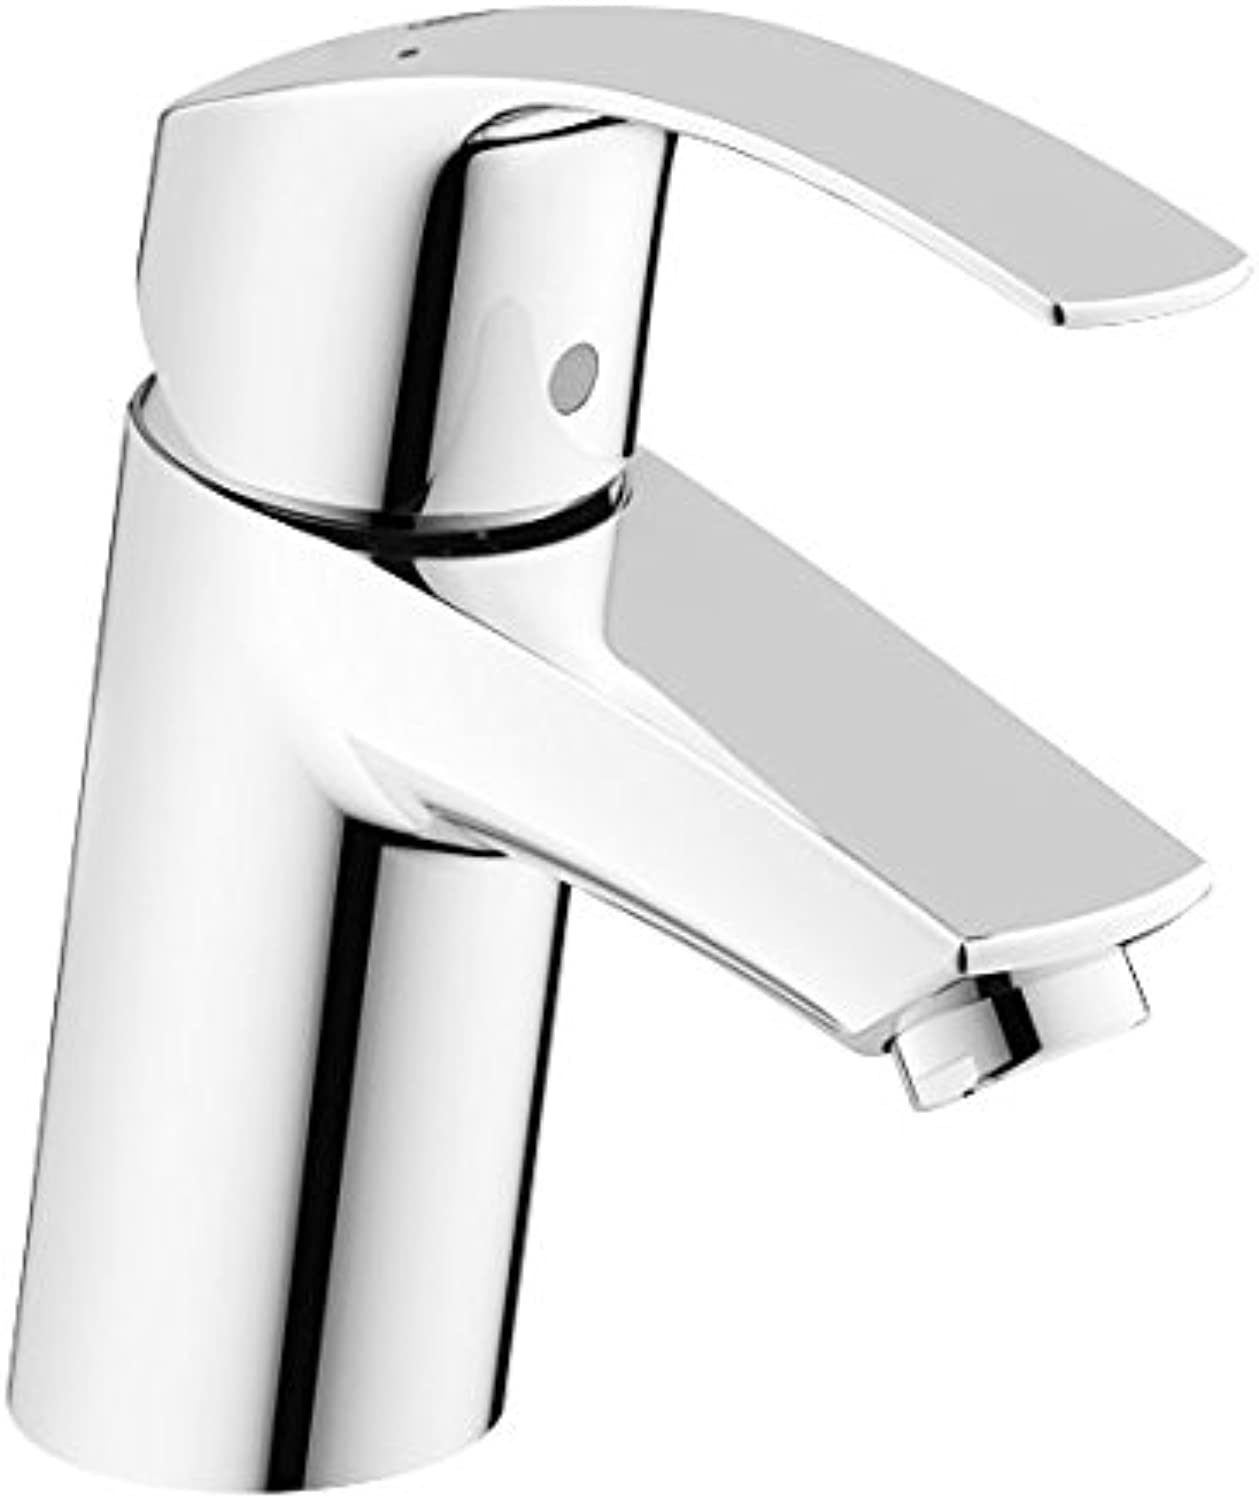 Grohe 32467002 Eurosmart New Single-Lever Basin Mixer Tap without Pop-Up Waste